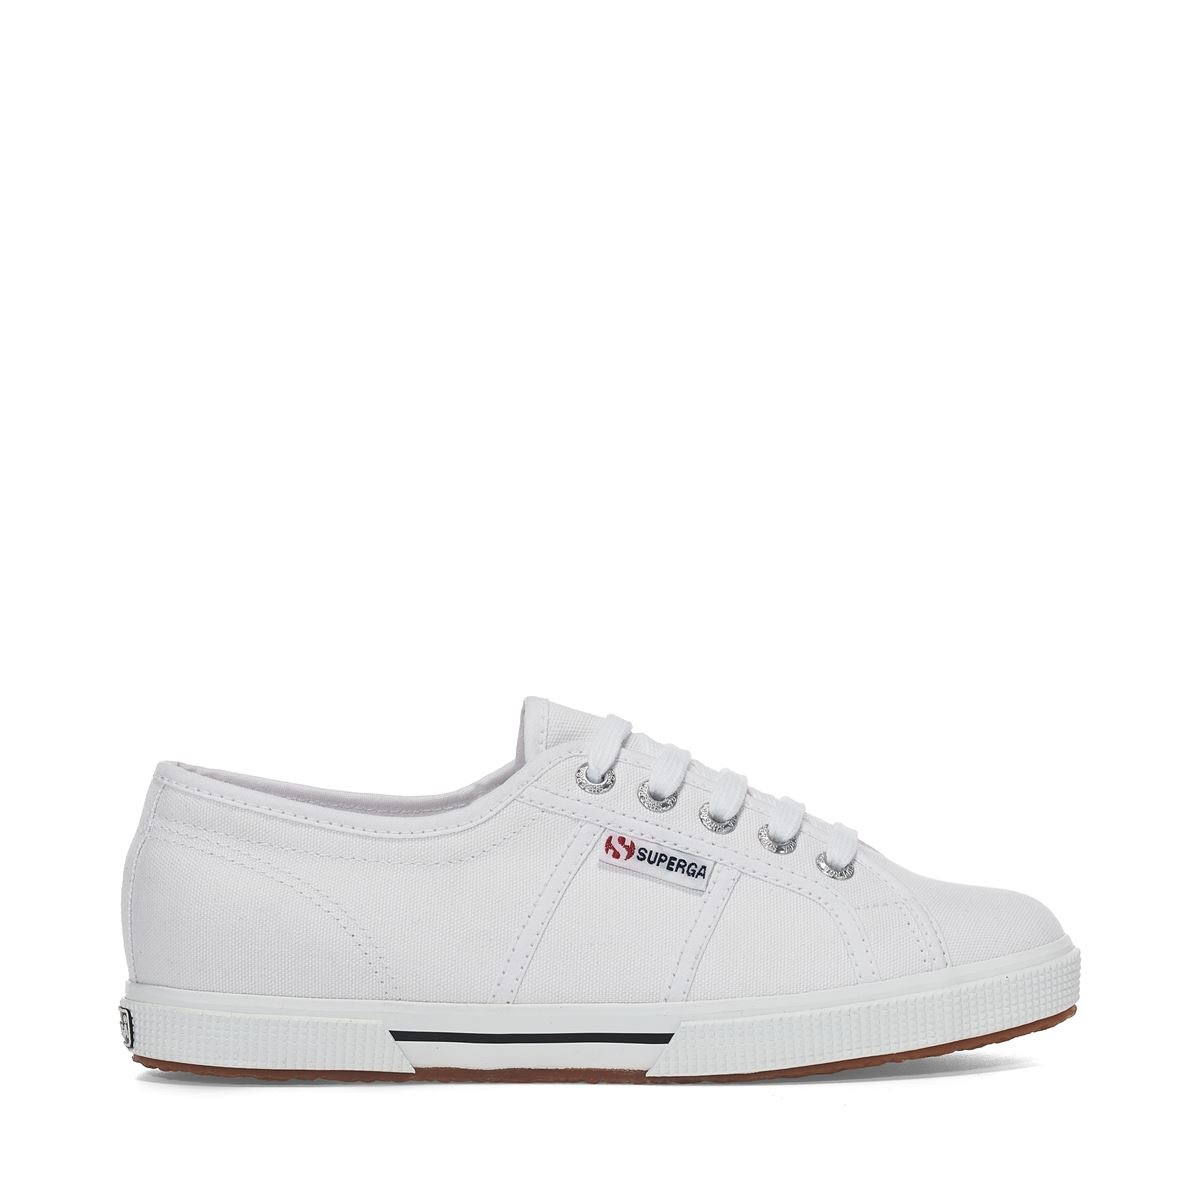 Superga Shoes Sneakers 2950-COTU Man Woman Traveling Low Cut